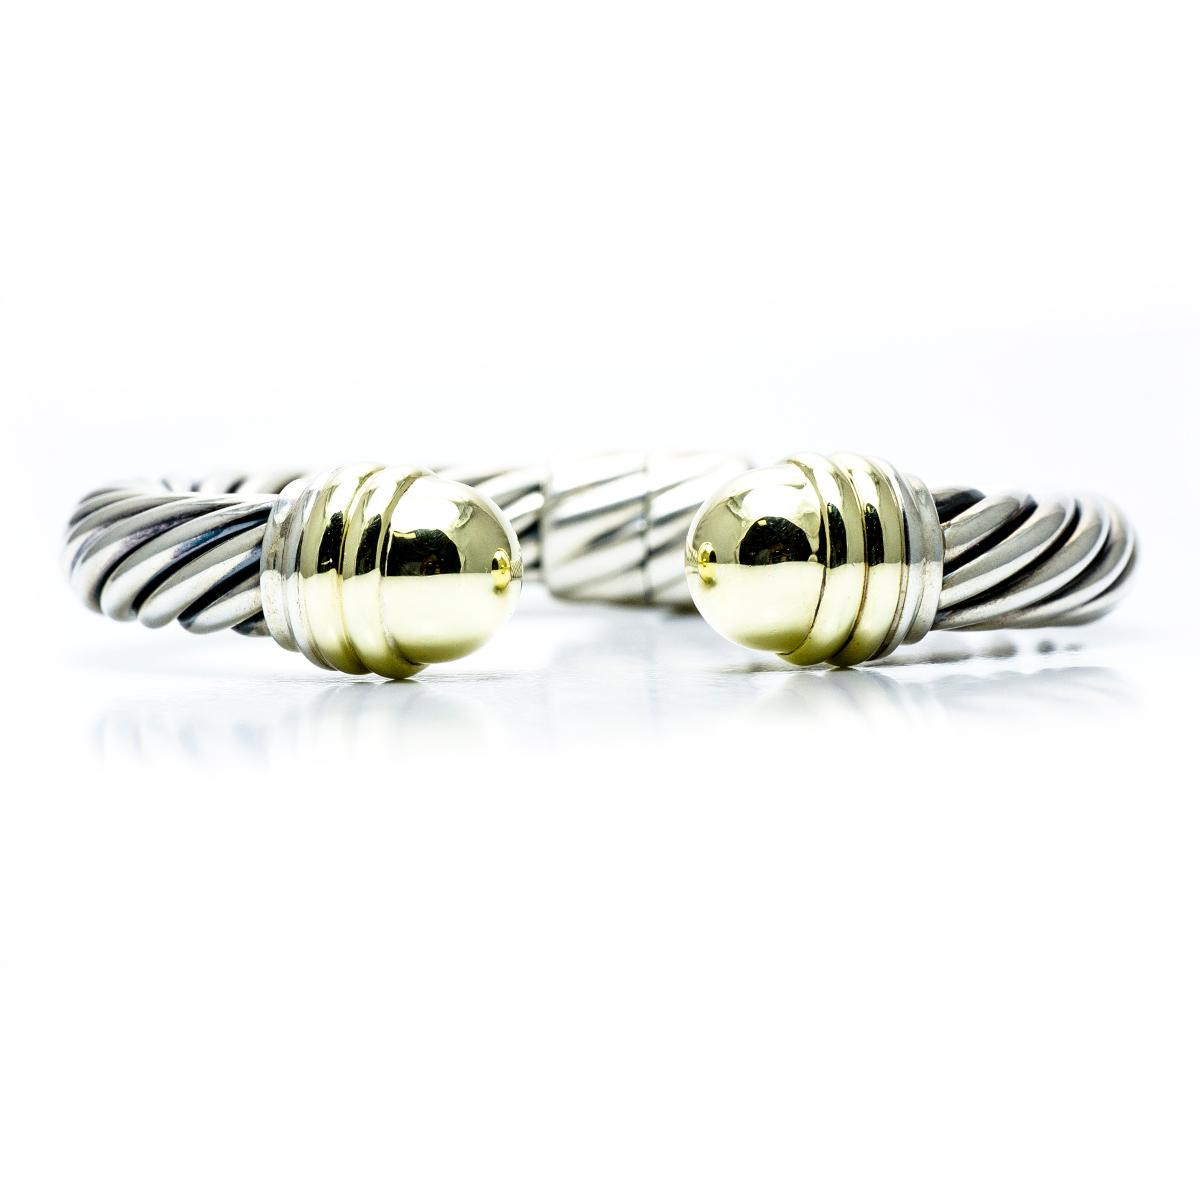 Cable Cuff Bracelet Gallery Image